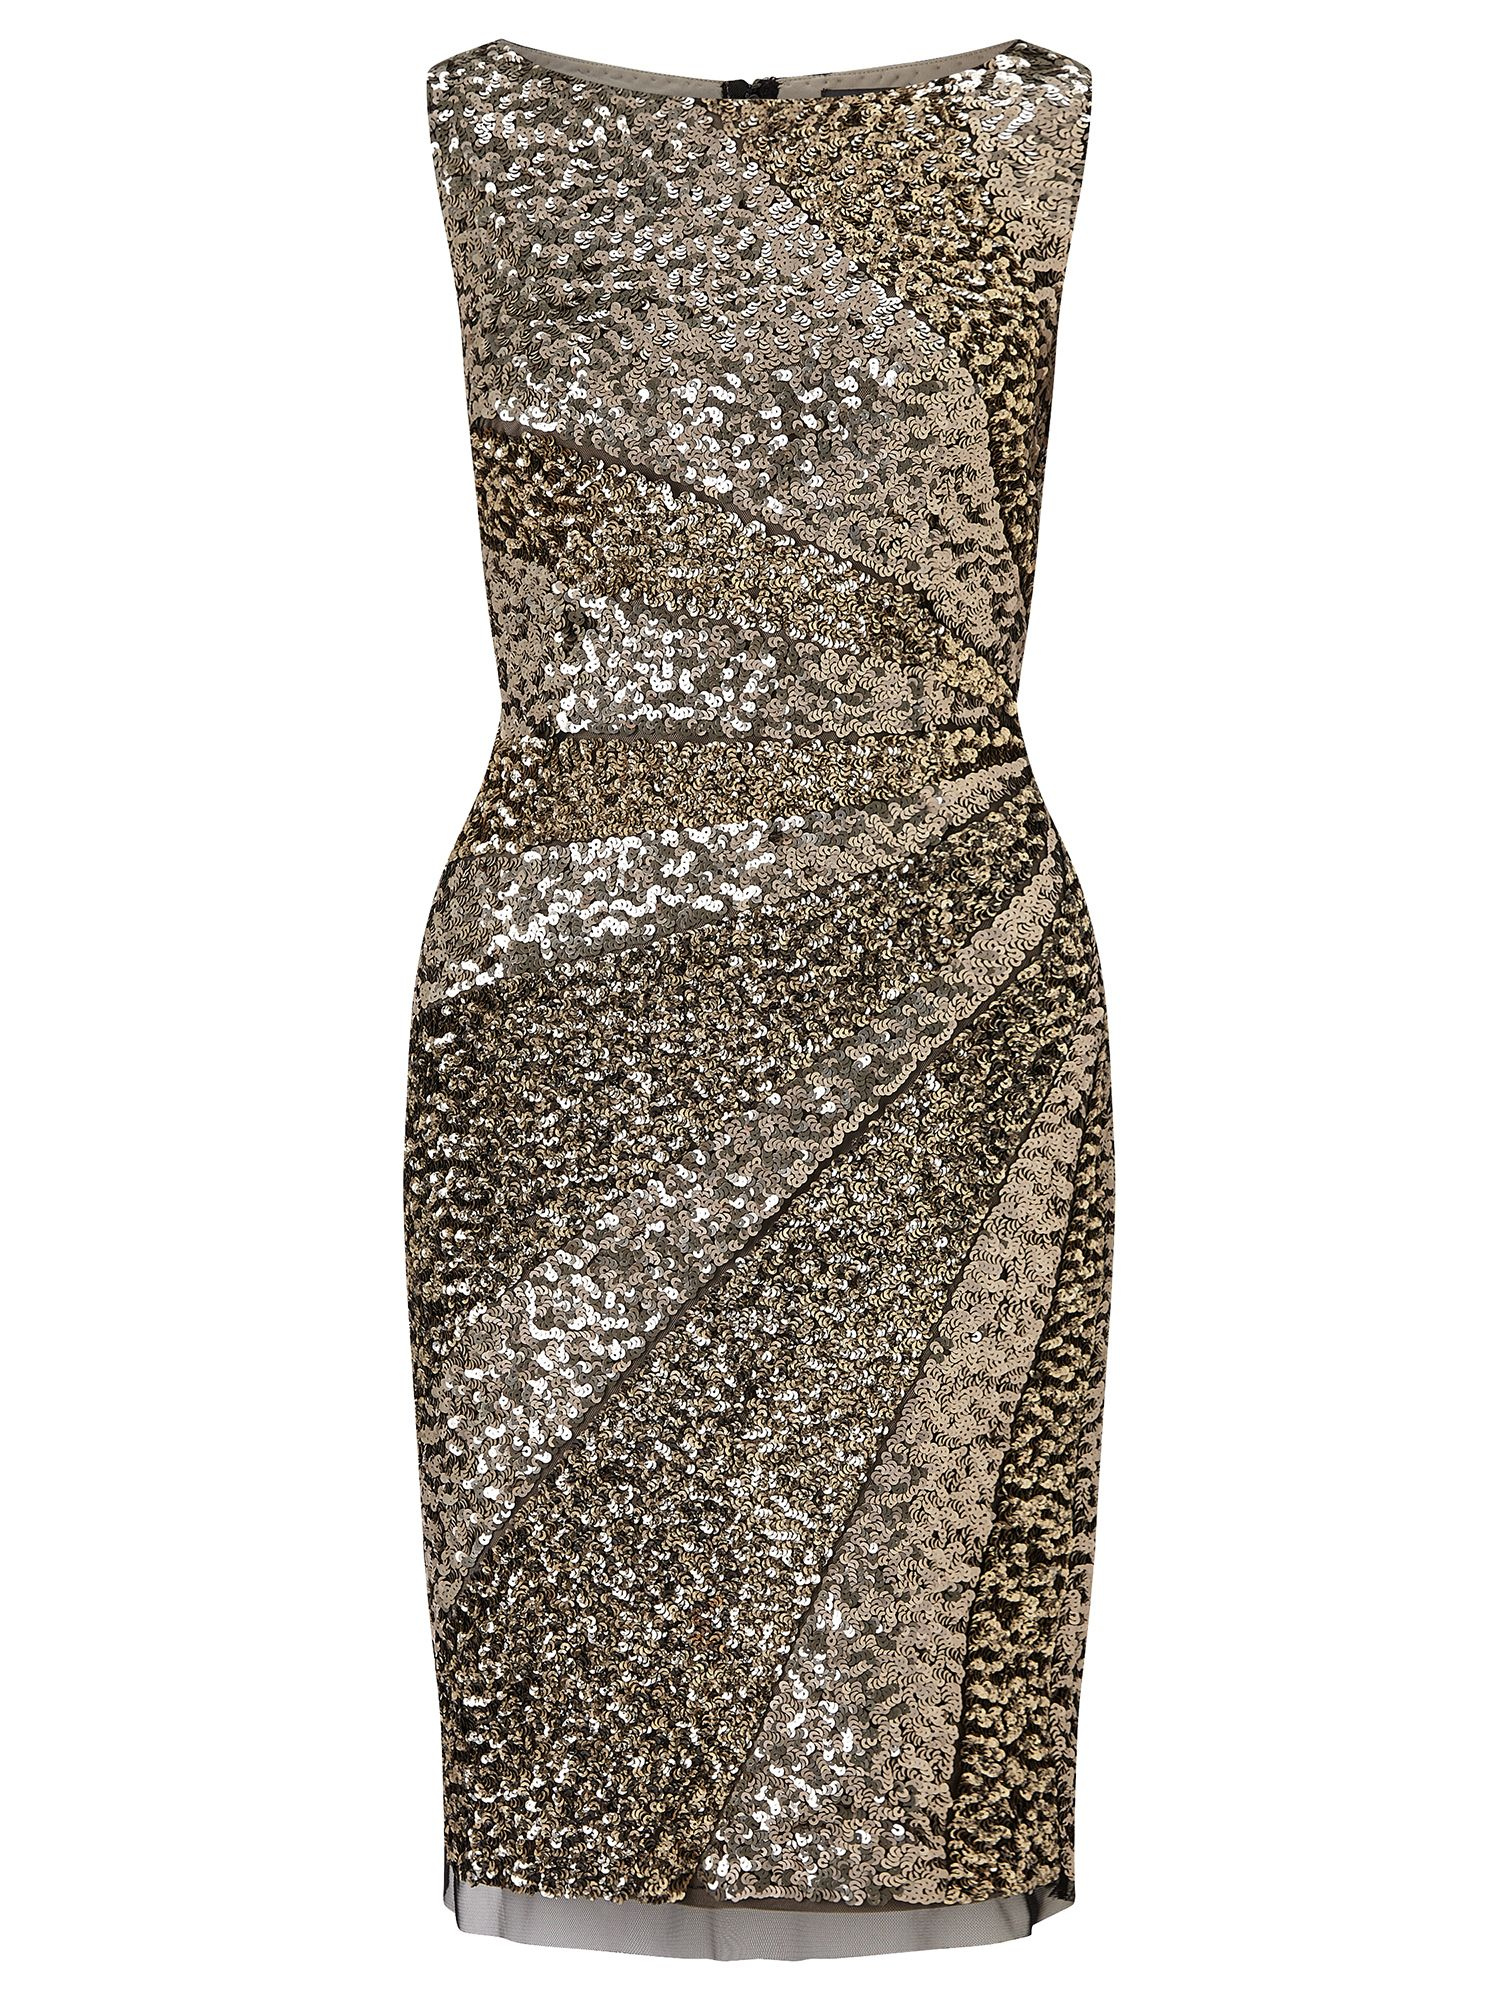 Adrianna Papell Sequin cocktail dress, Brown